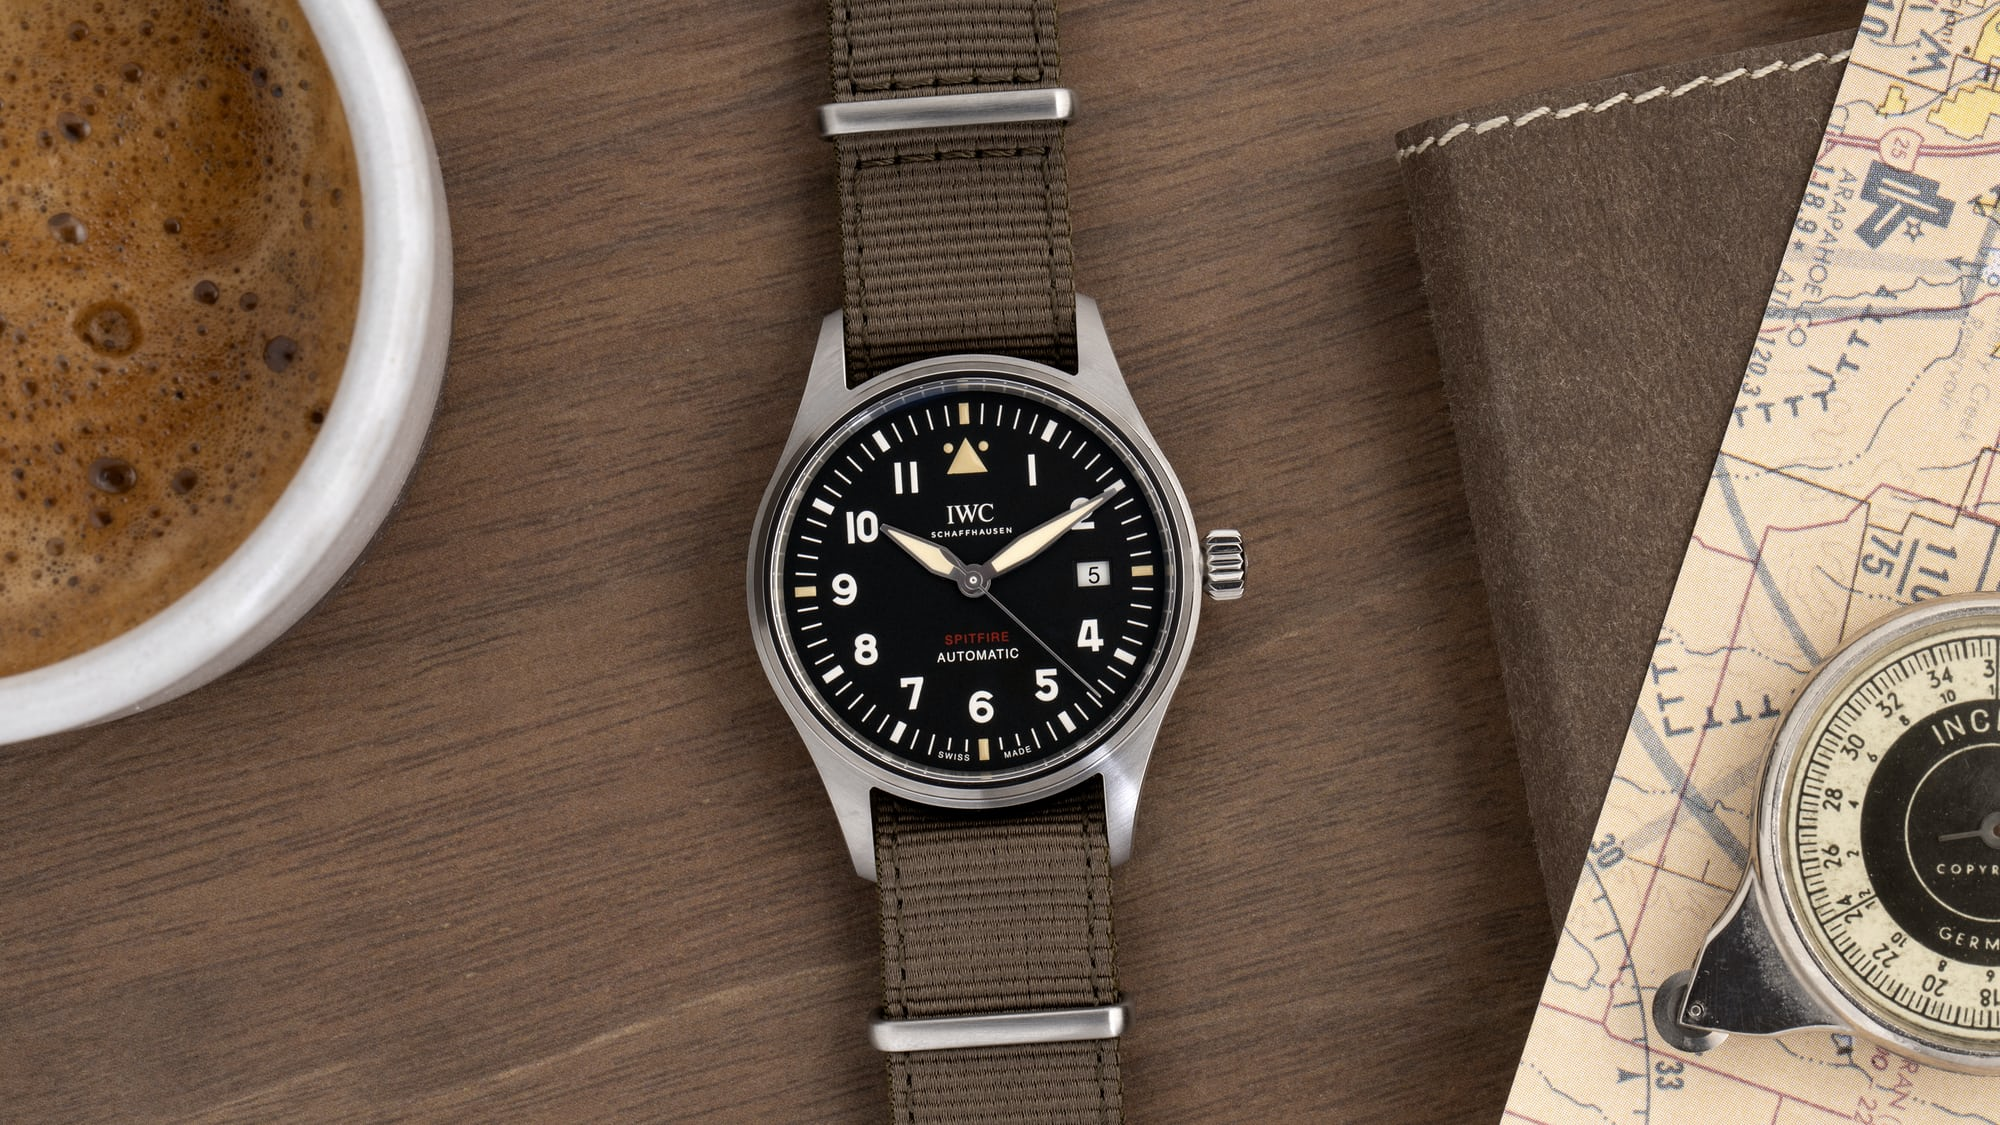 Hands-On: The IWC Pilot's Watch Automatic Spitfire